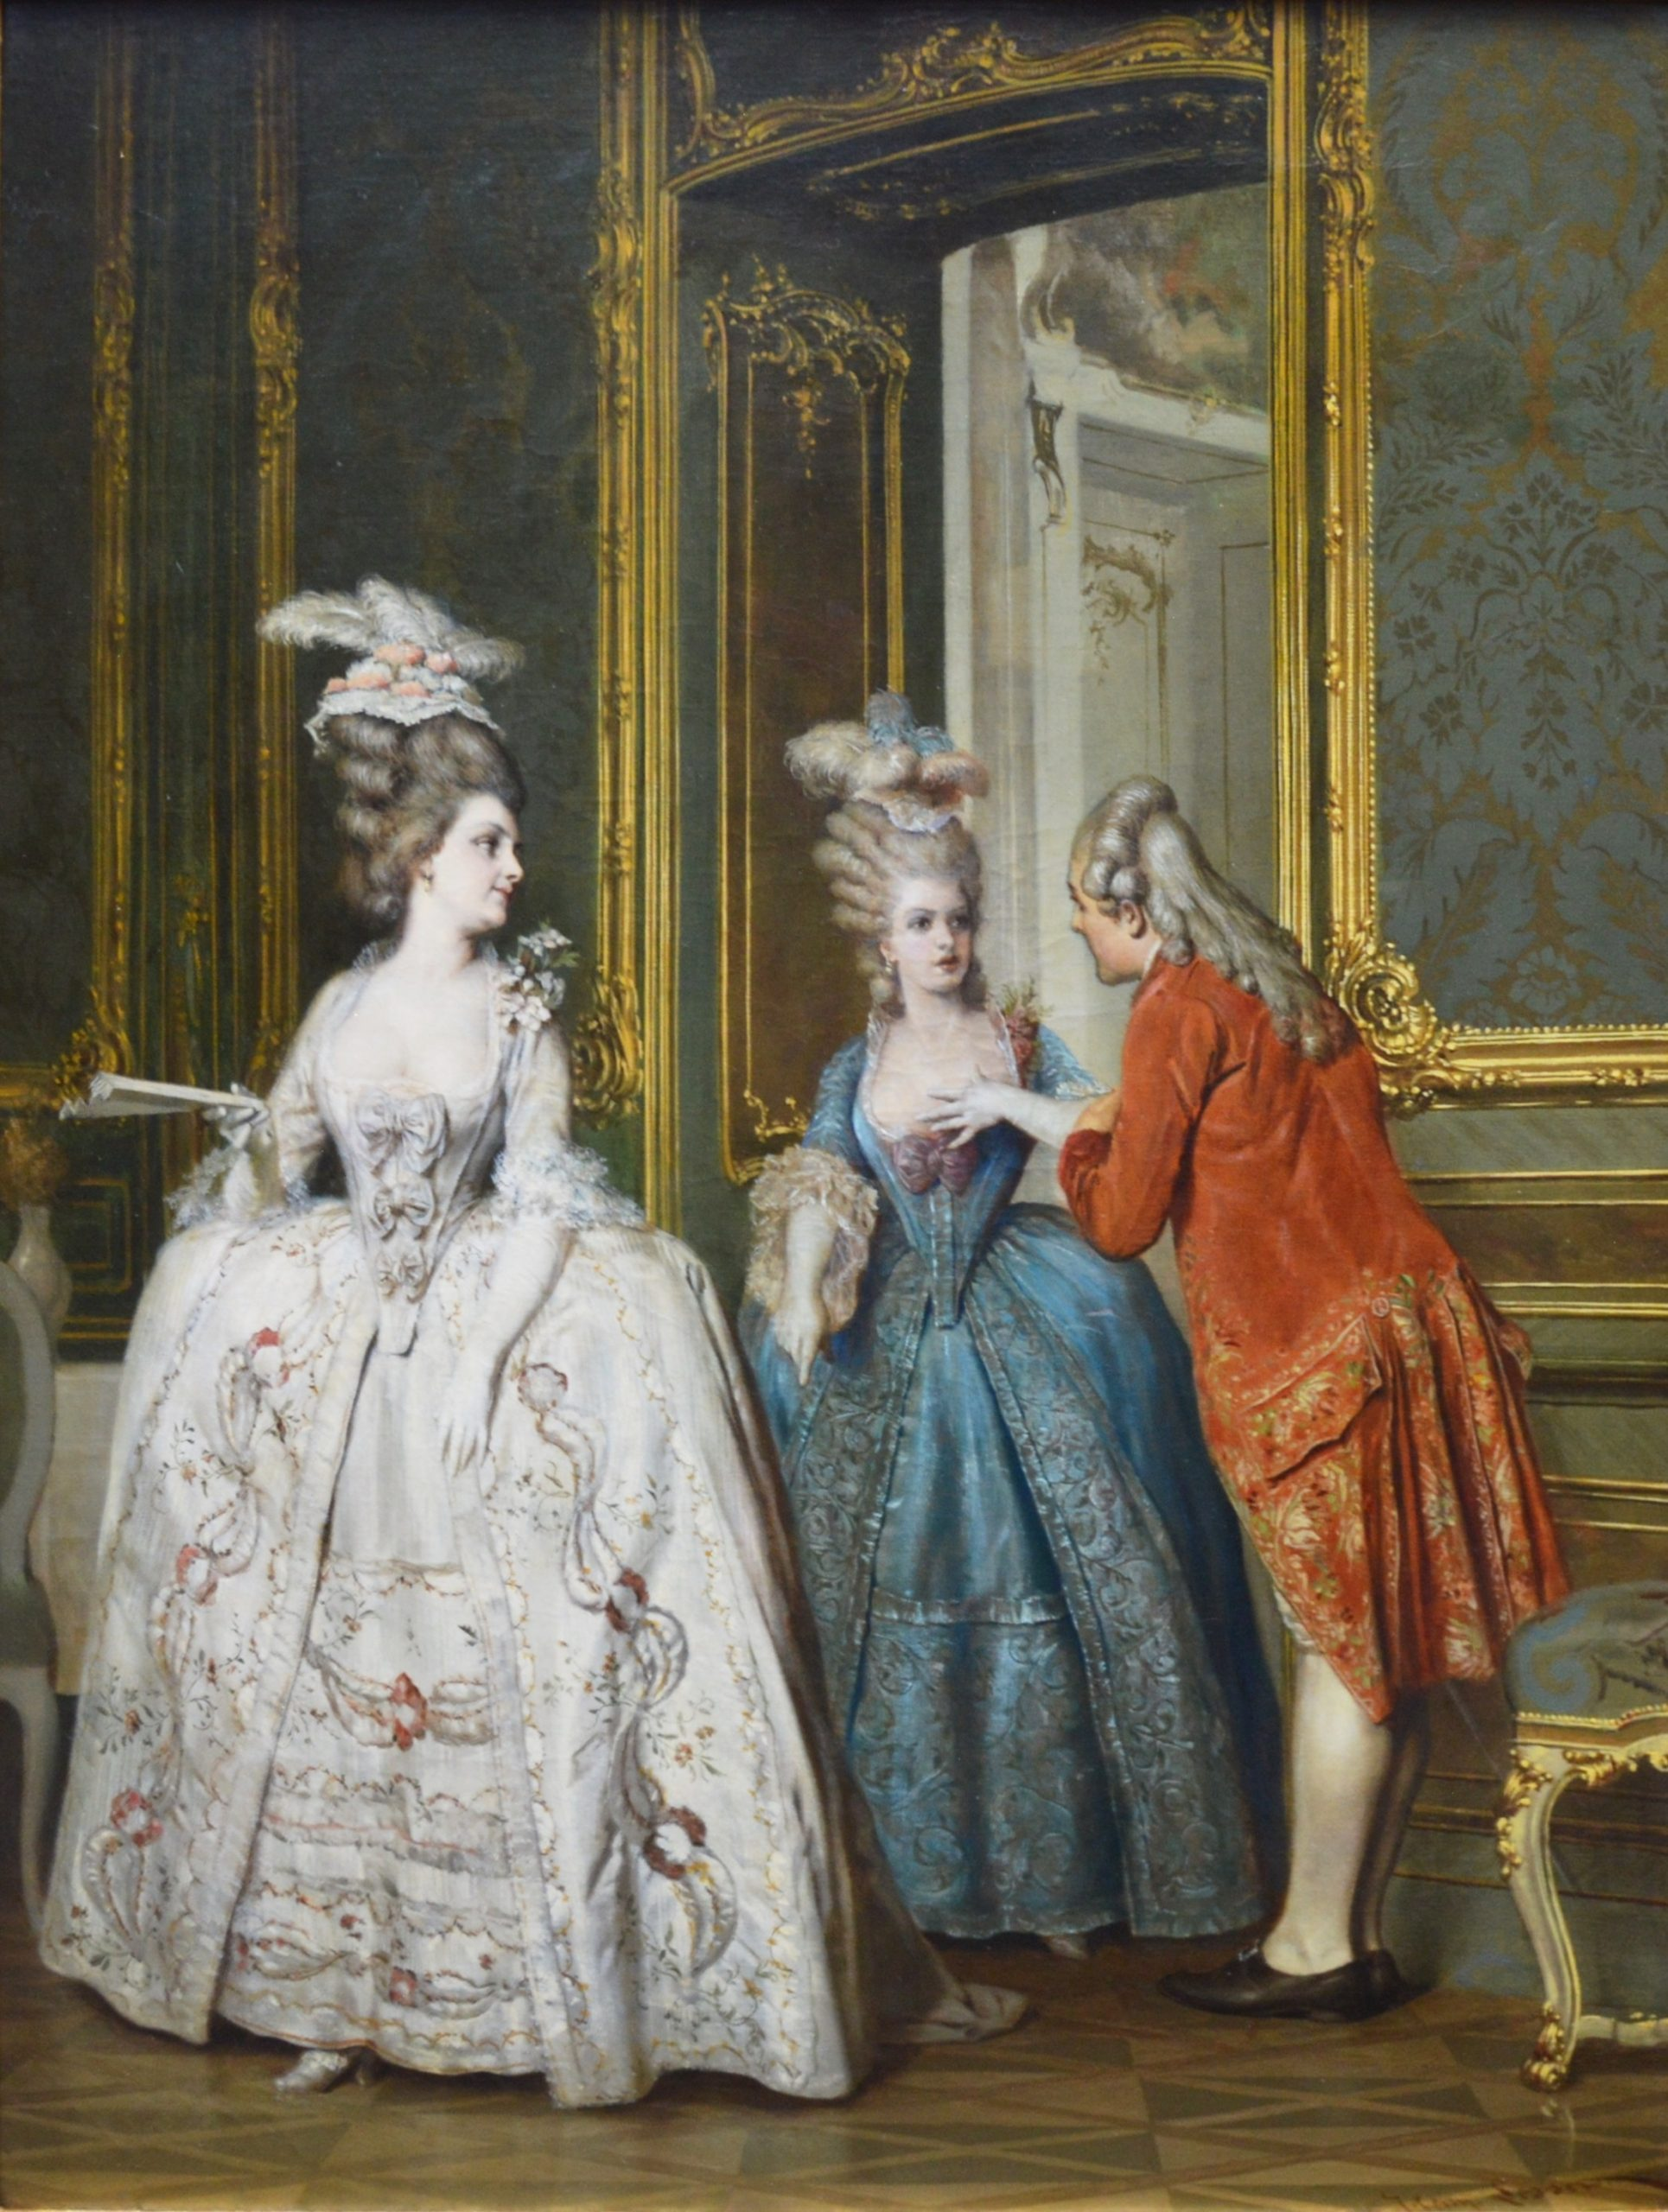 Marie Antoinette & Marie Thérèse at Versailles - 19th Century French Oil Painting Image